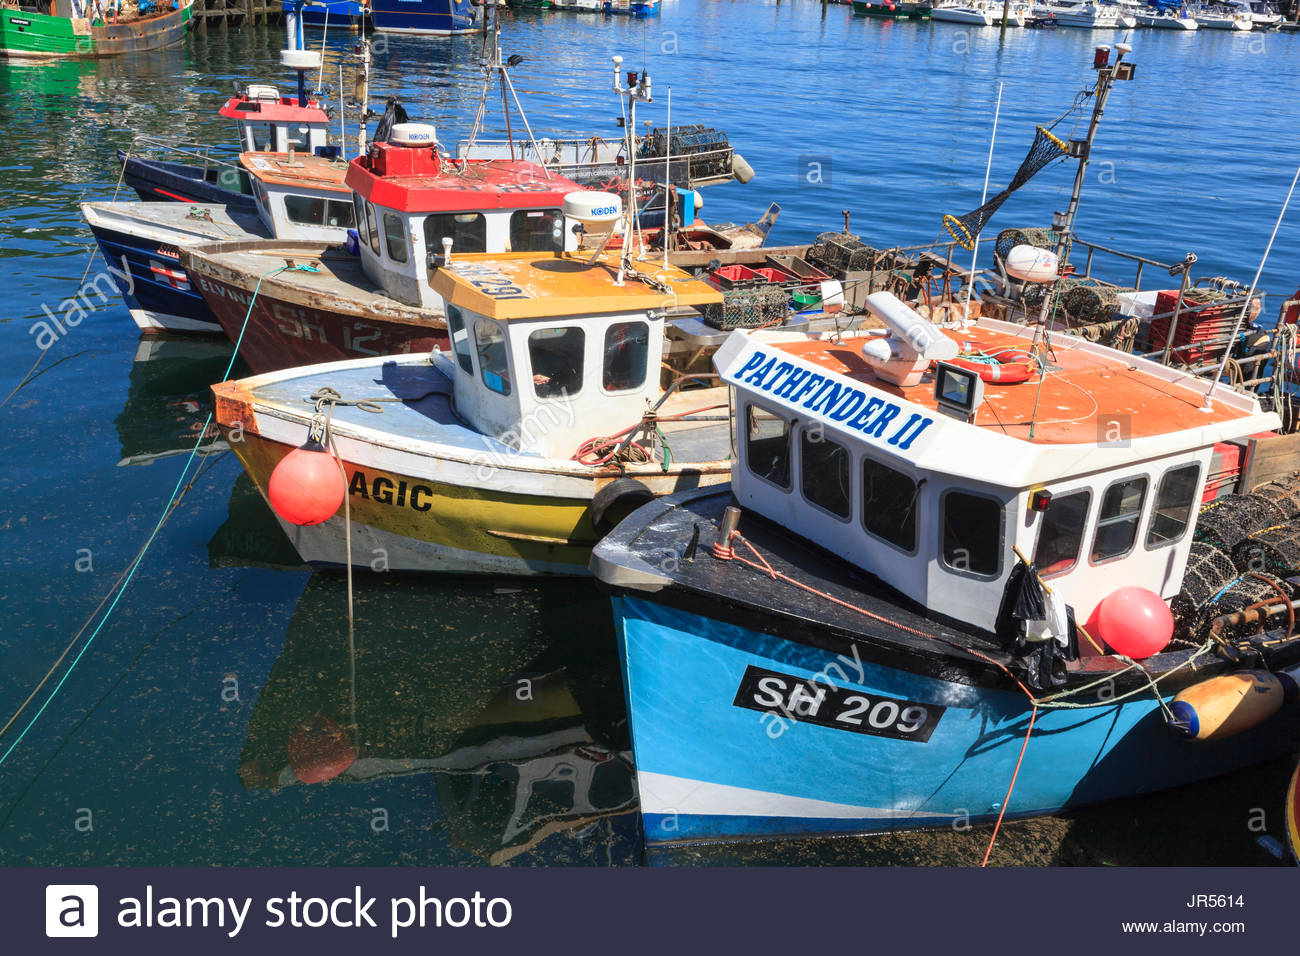 Fishing boats for hire stock photos fishing boats for for Inshore fishing boats